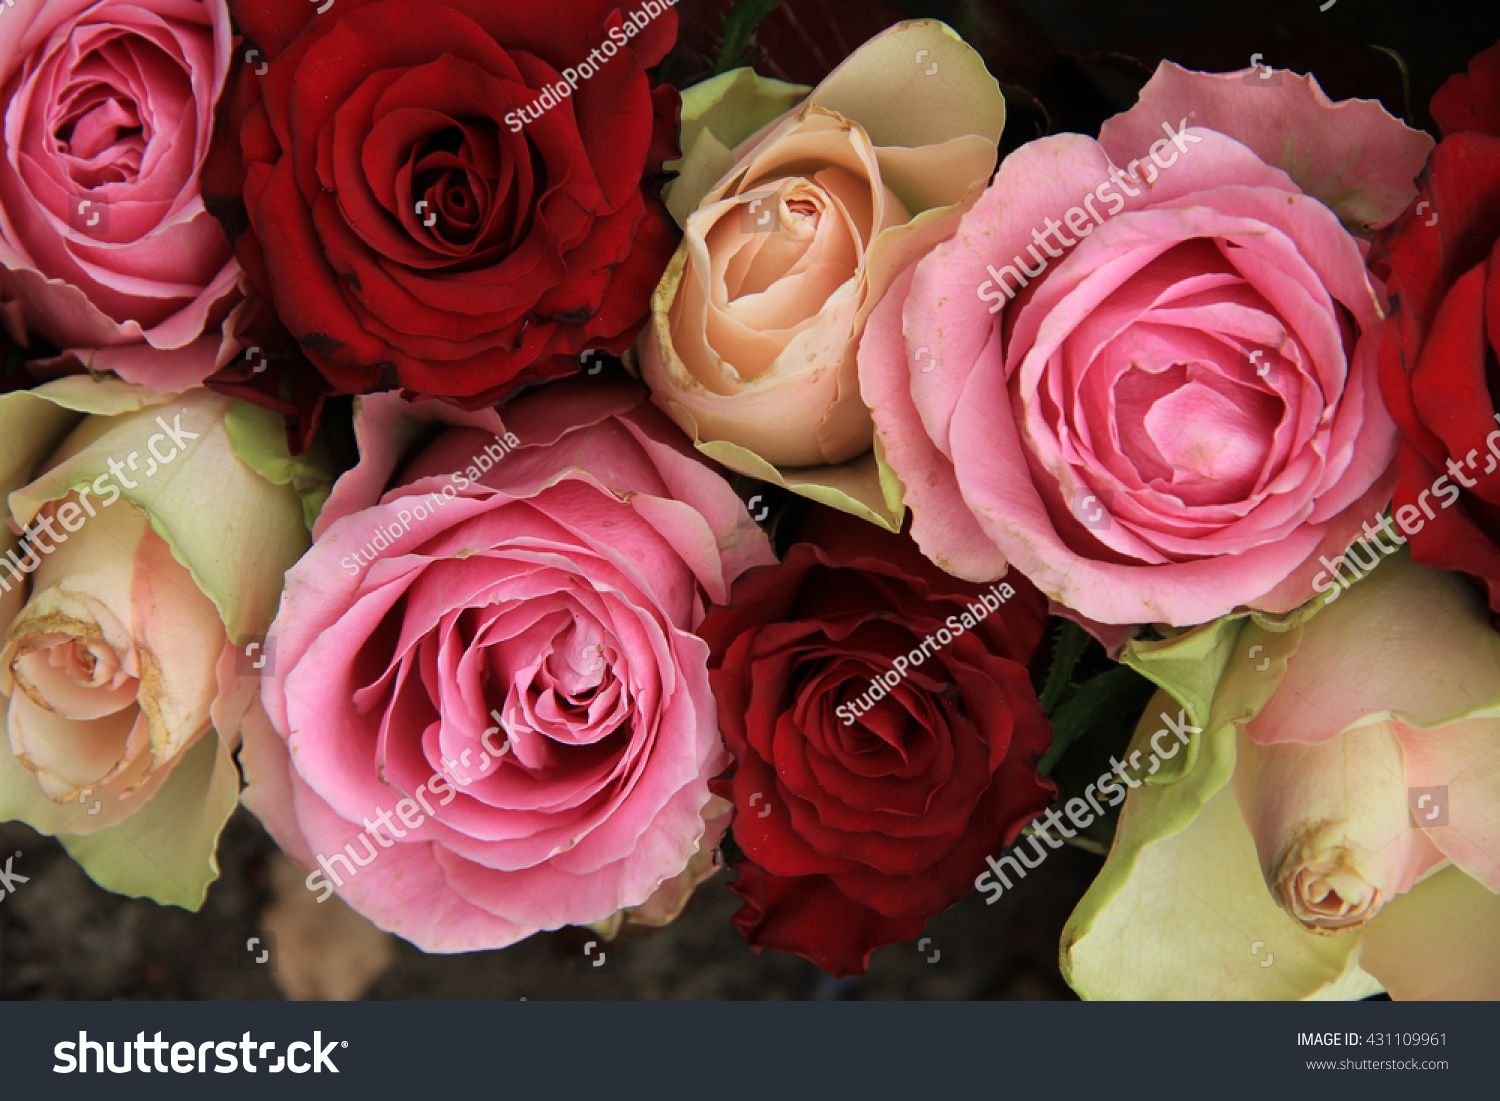 Royalty Free Wedding Flowers In Different Shades Of 431109961